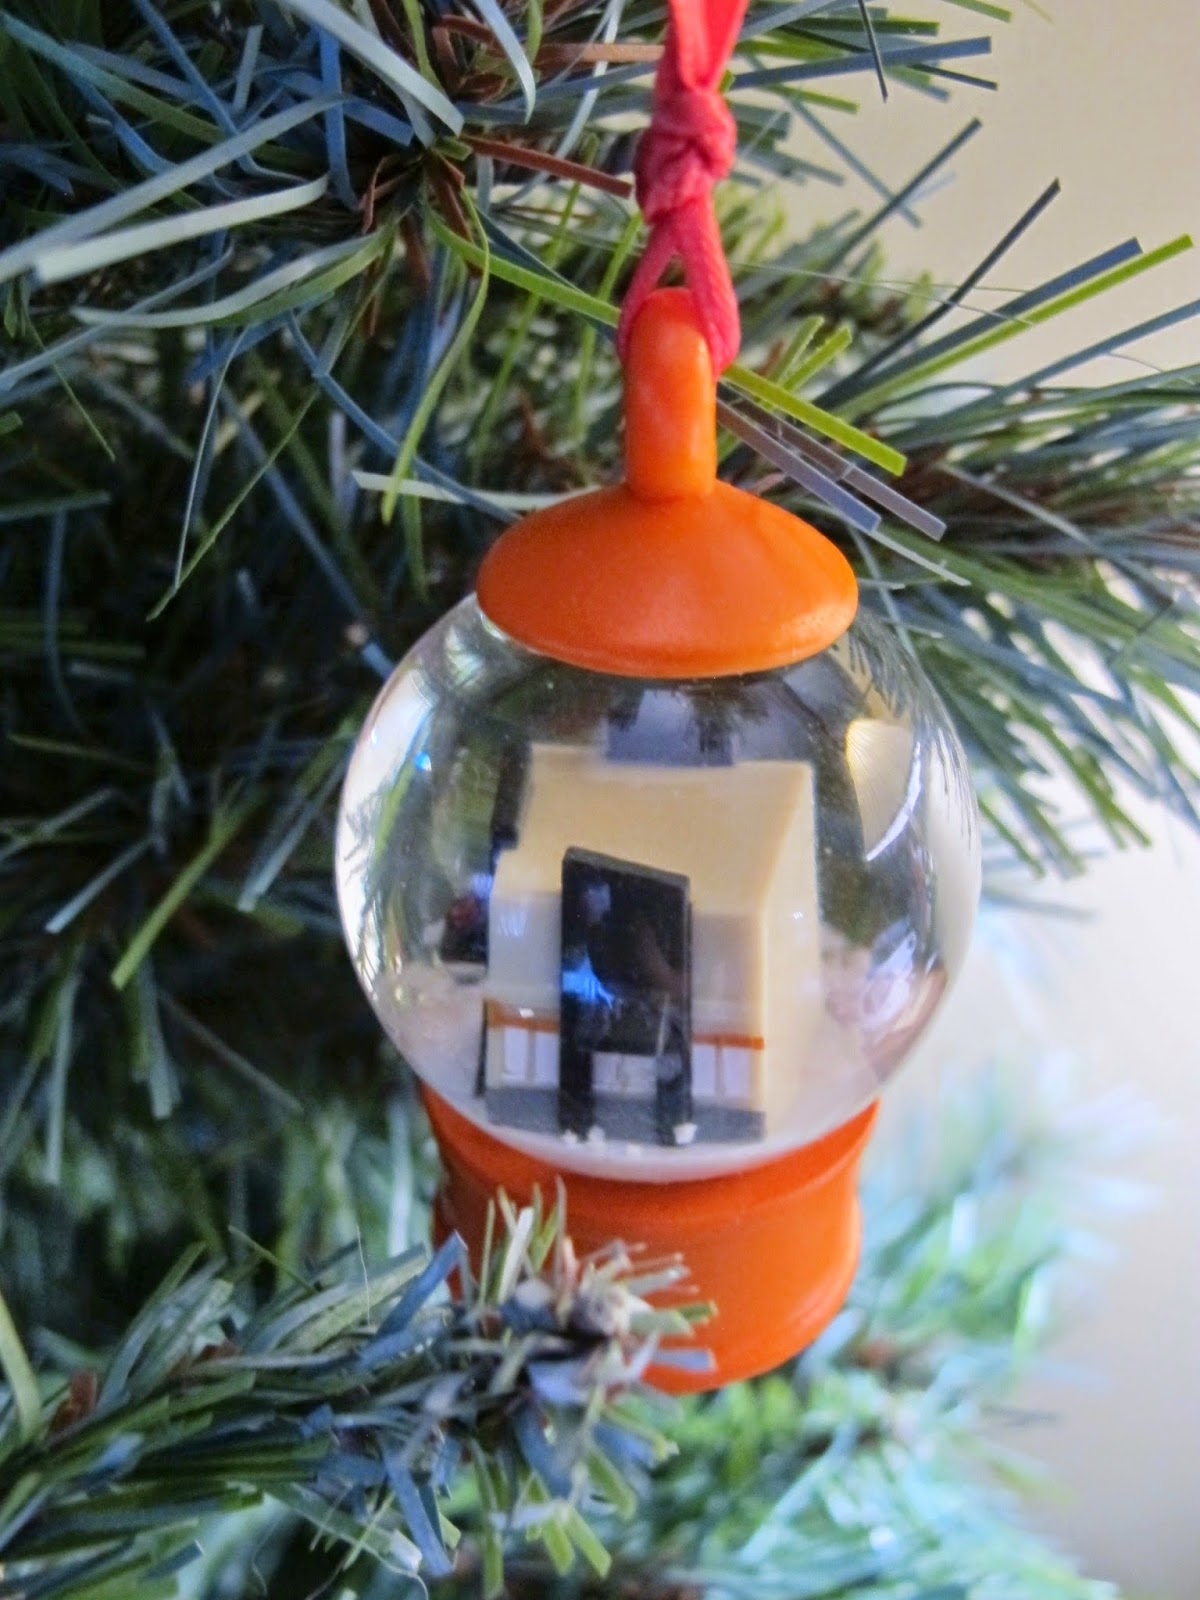 A Dunkin Donuts Christmas Tree Ornament Every Year  Of Course Now That  We Have Sold The House In America To Look At Them Makes Me Very Nostalgic